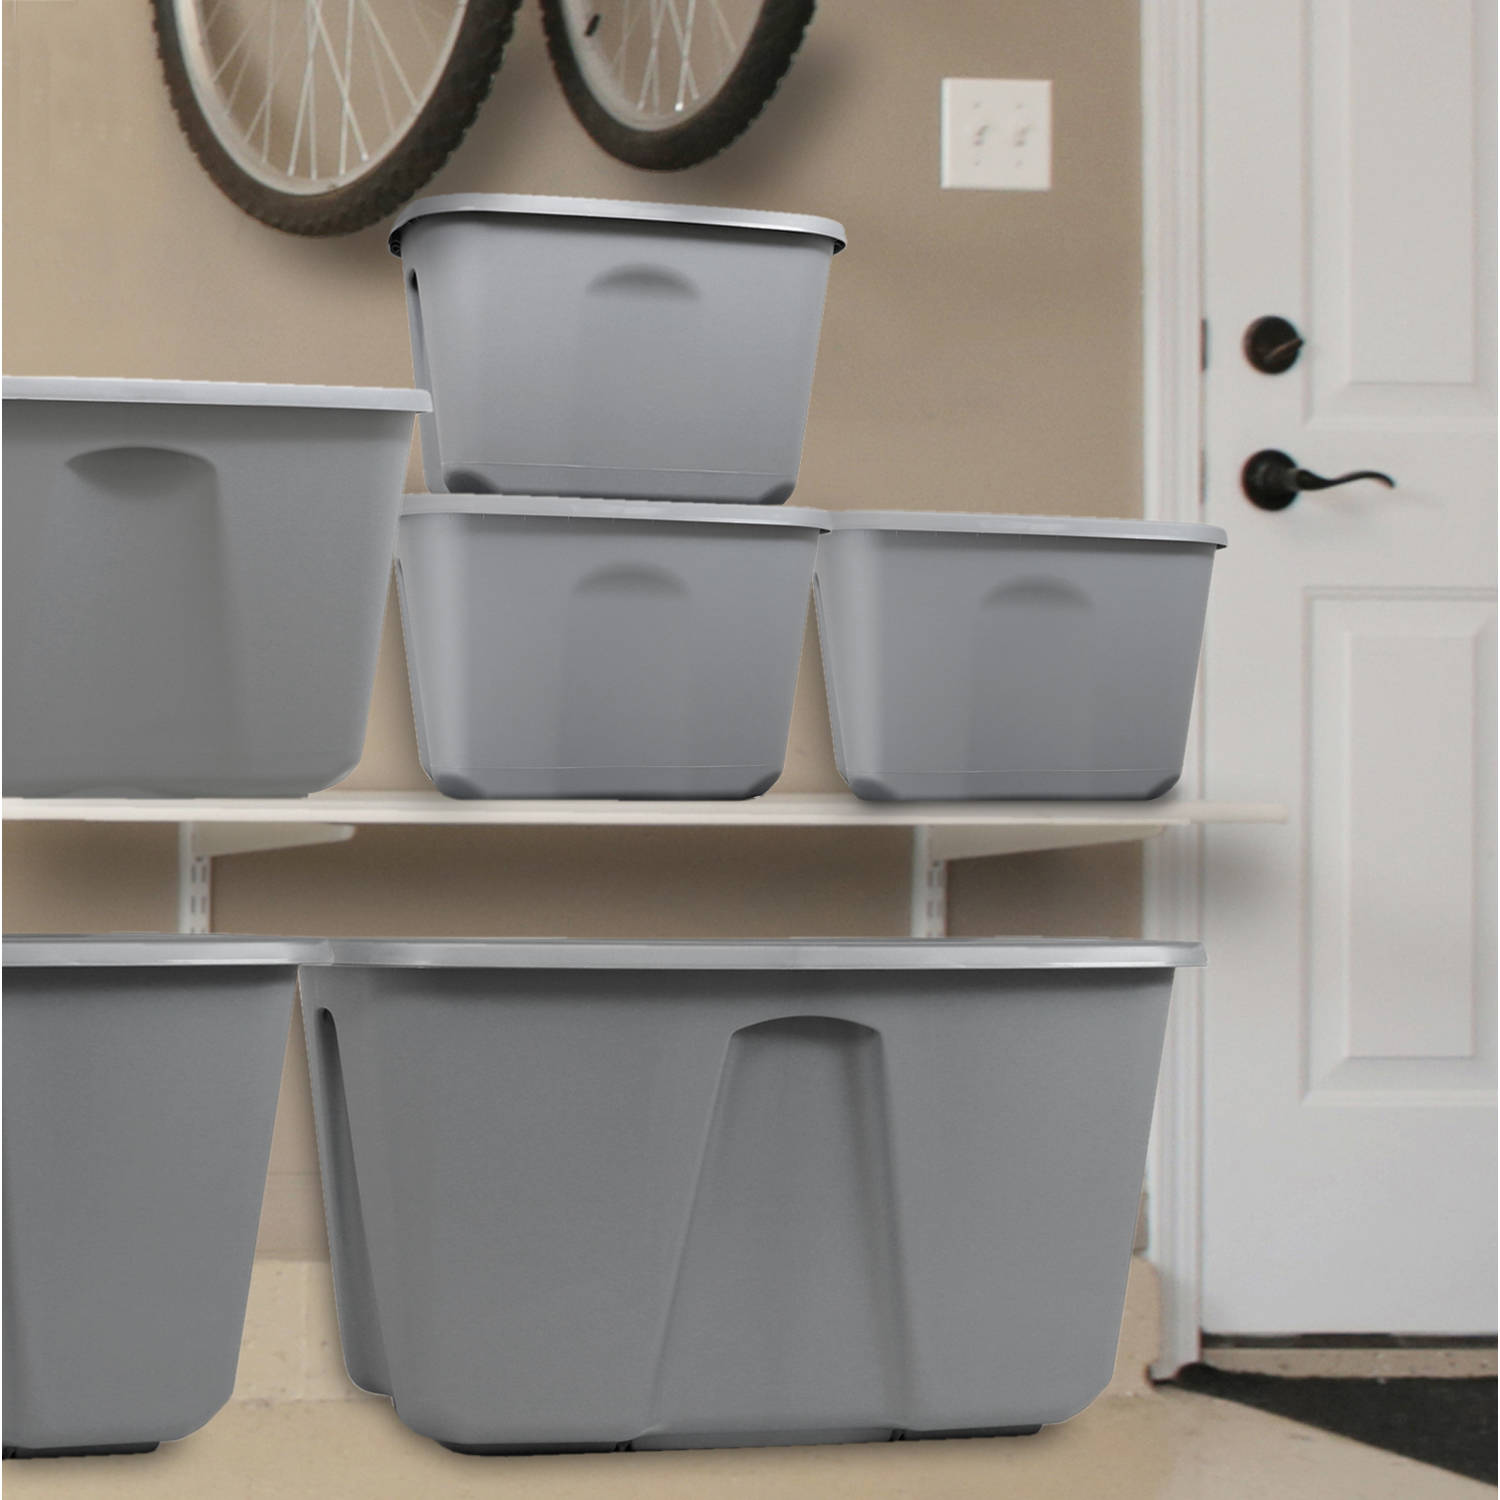 Good 10 Gallon Storage Bins With Lids - 740656e6-3311-4453-bb0e-85b173bcb1a0_1  Pic_62857.jpeg